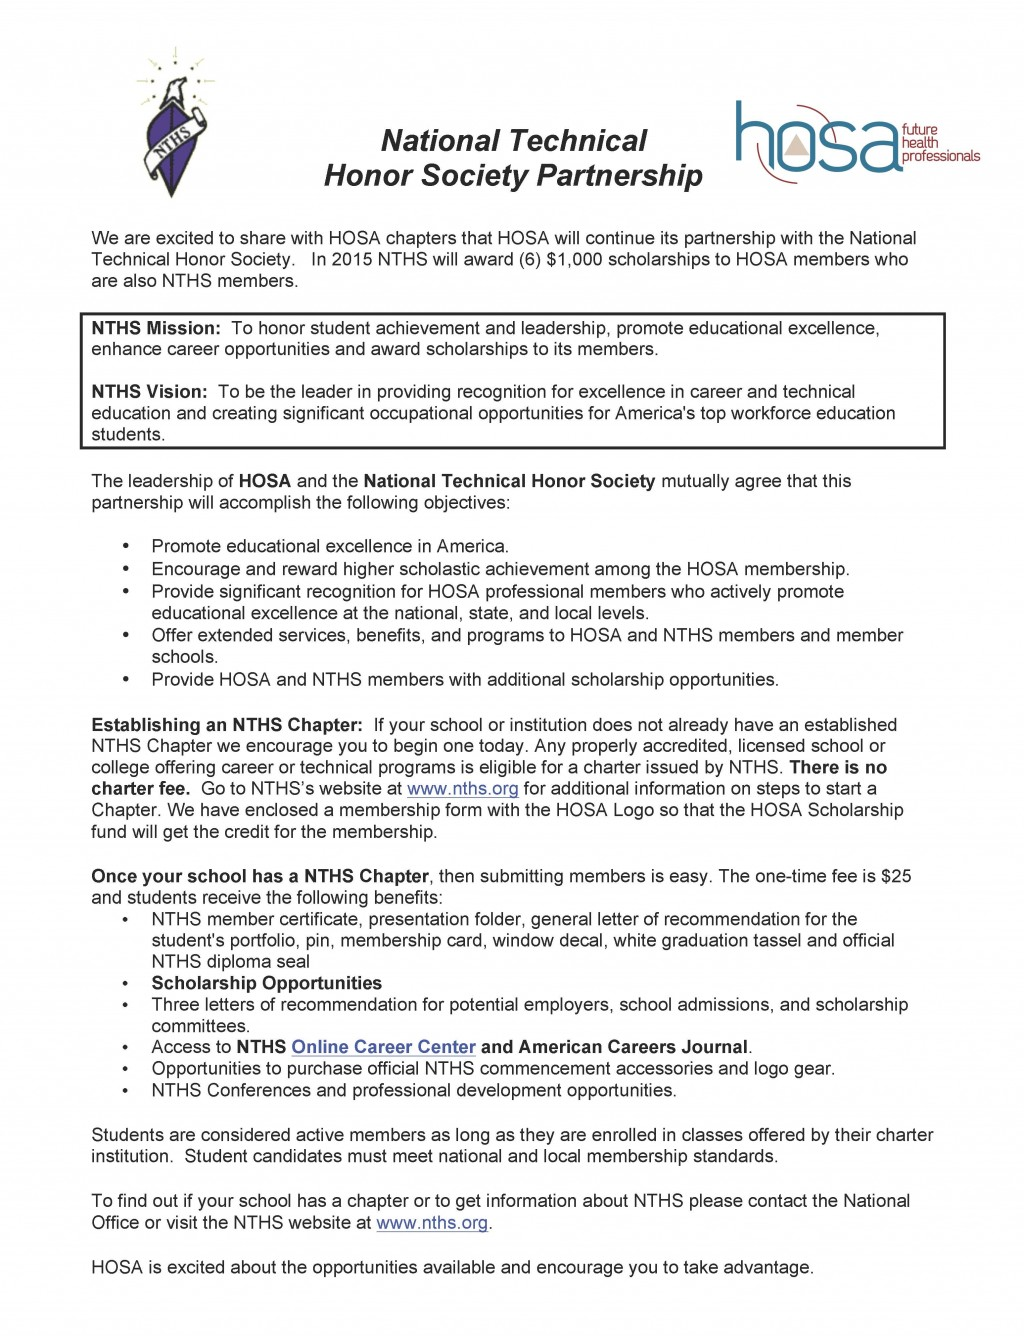 005 Nhs Application Essay Prompt Archives Madhurbatter Writings For 4th Grade National Honor Society H College Middle School Uc High 5th Gre 3rd Top Stp Questions Conclusion Large